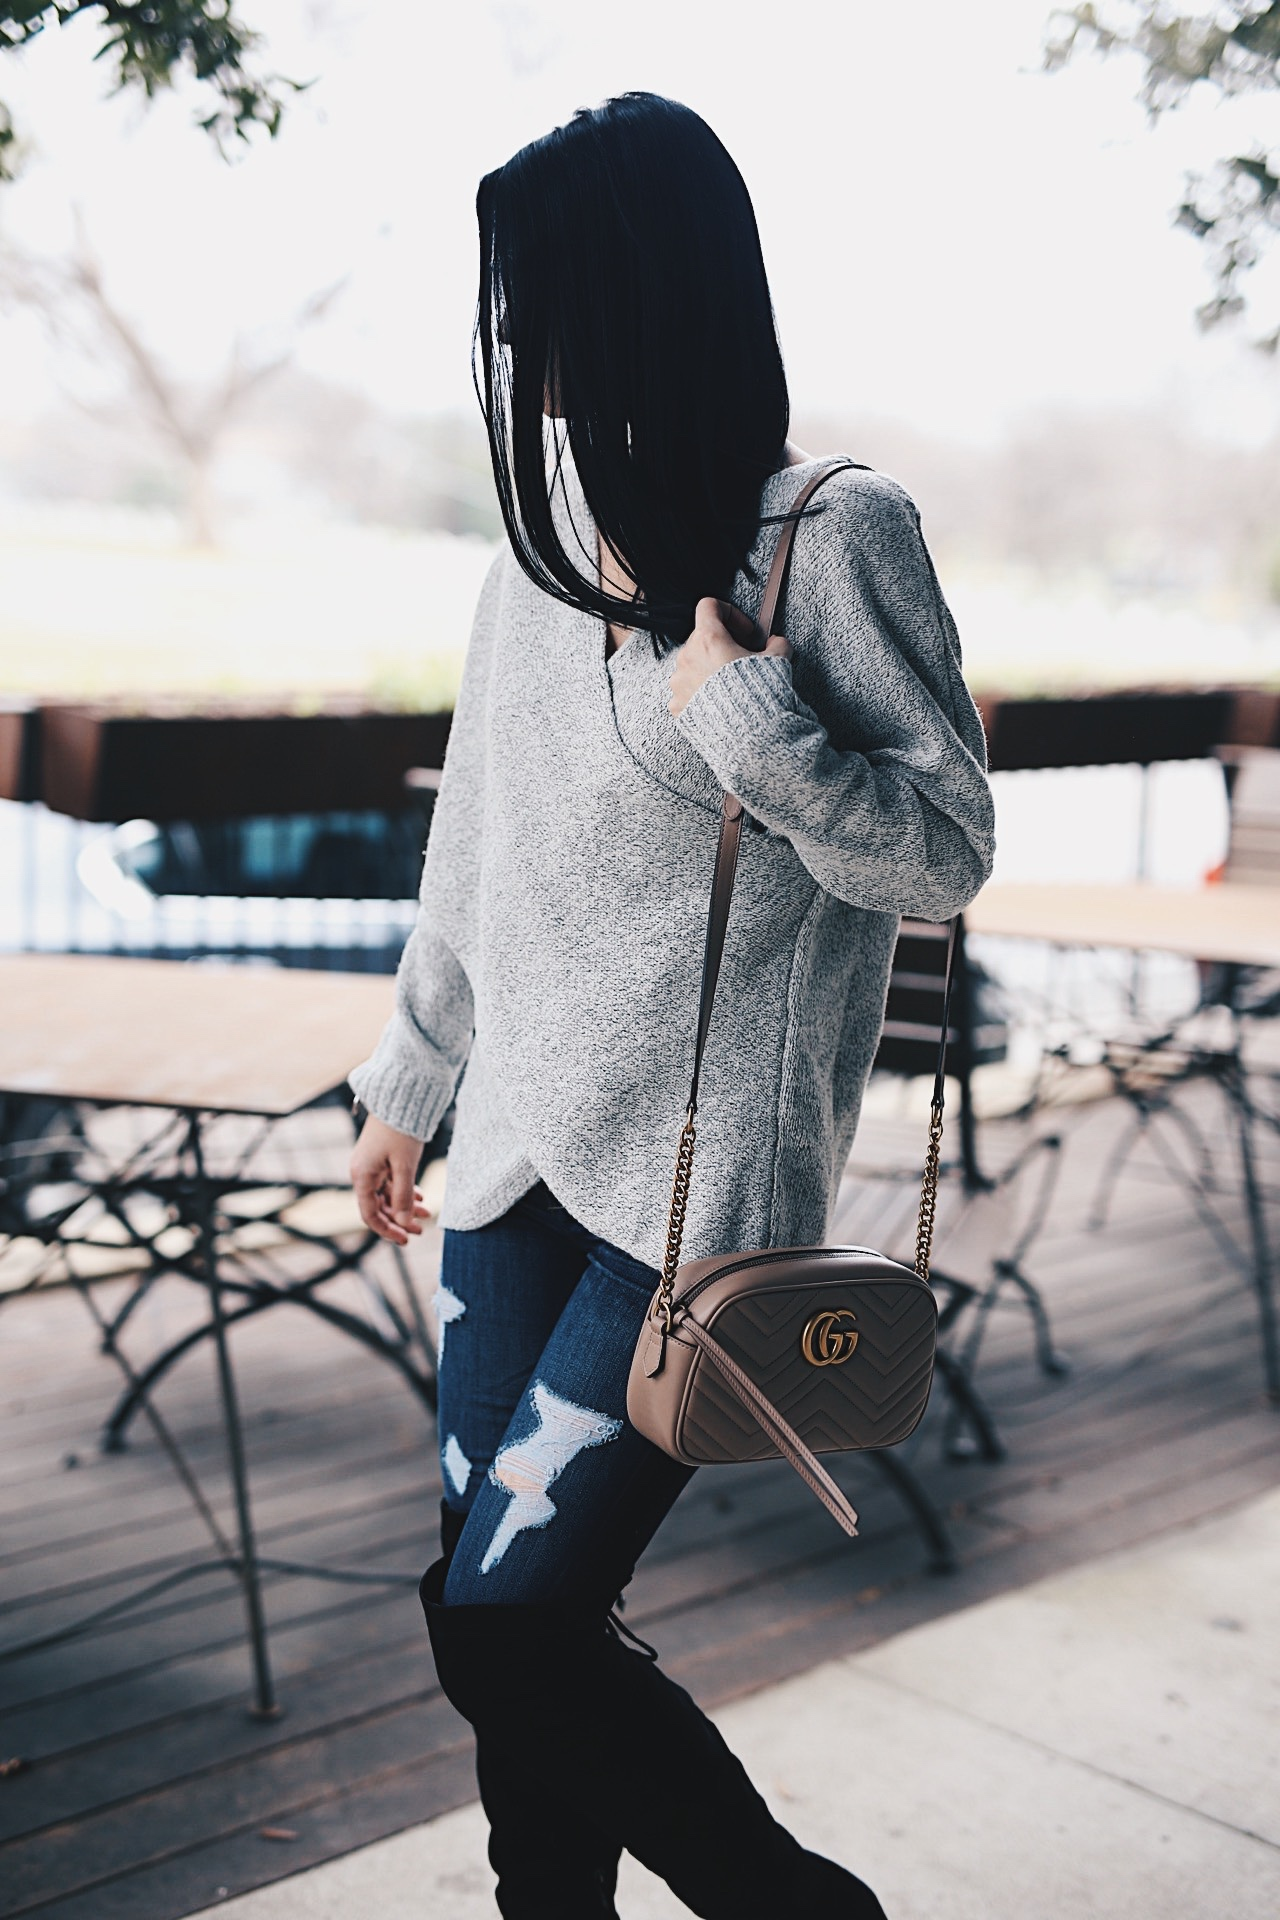 DTKAustin shares her favorite casual Winter look. Ashley is wearing a Chicwish sweater, Express jeans, Gucci Marmont Bag and OTK Boots. Click for more outfit details!